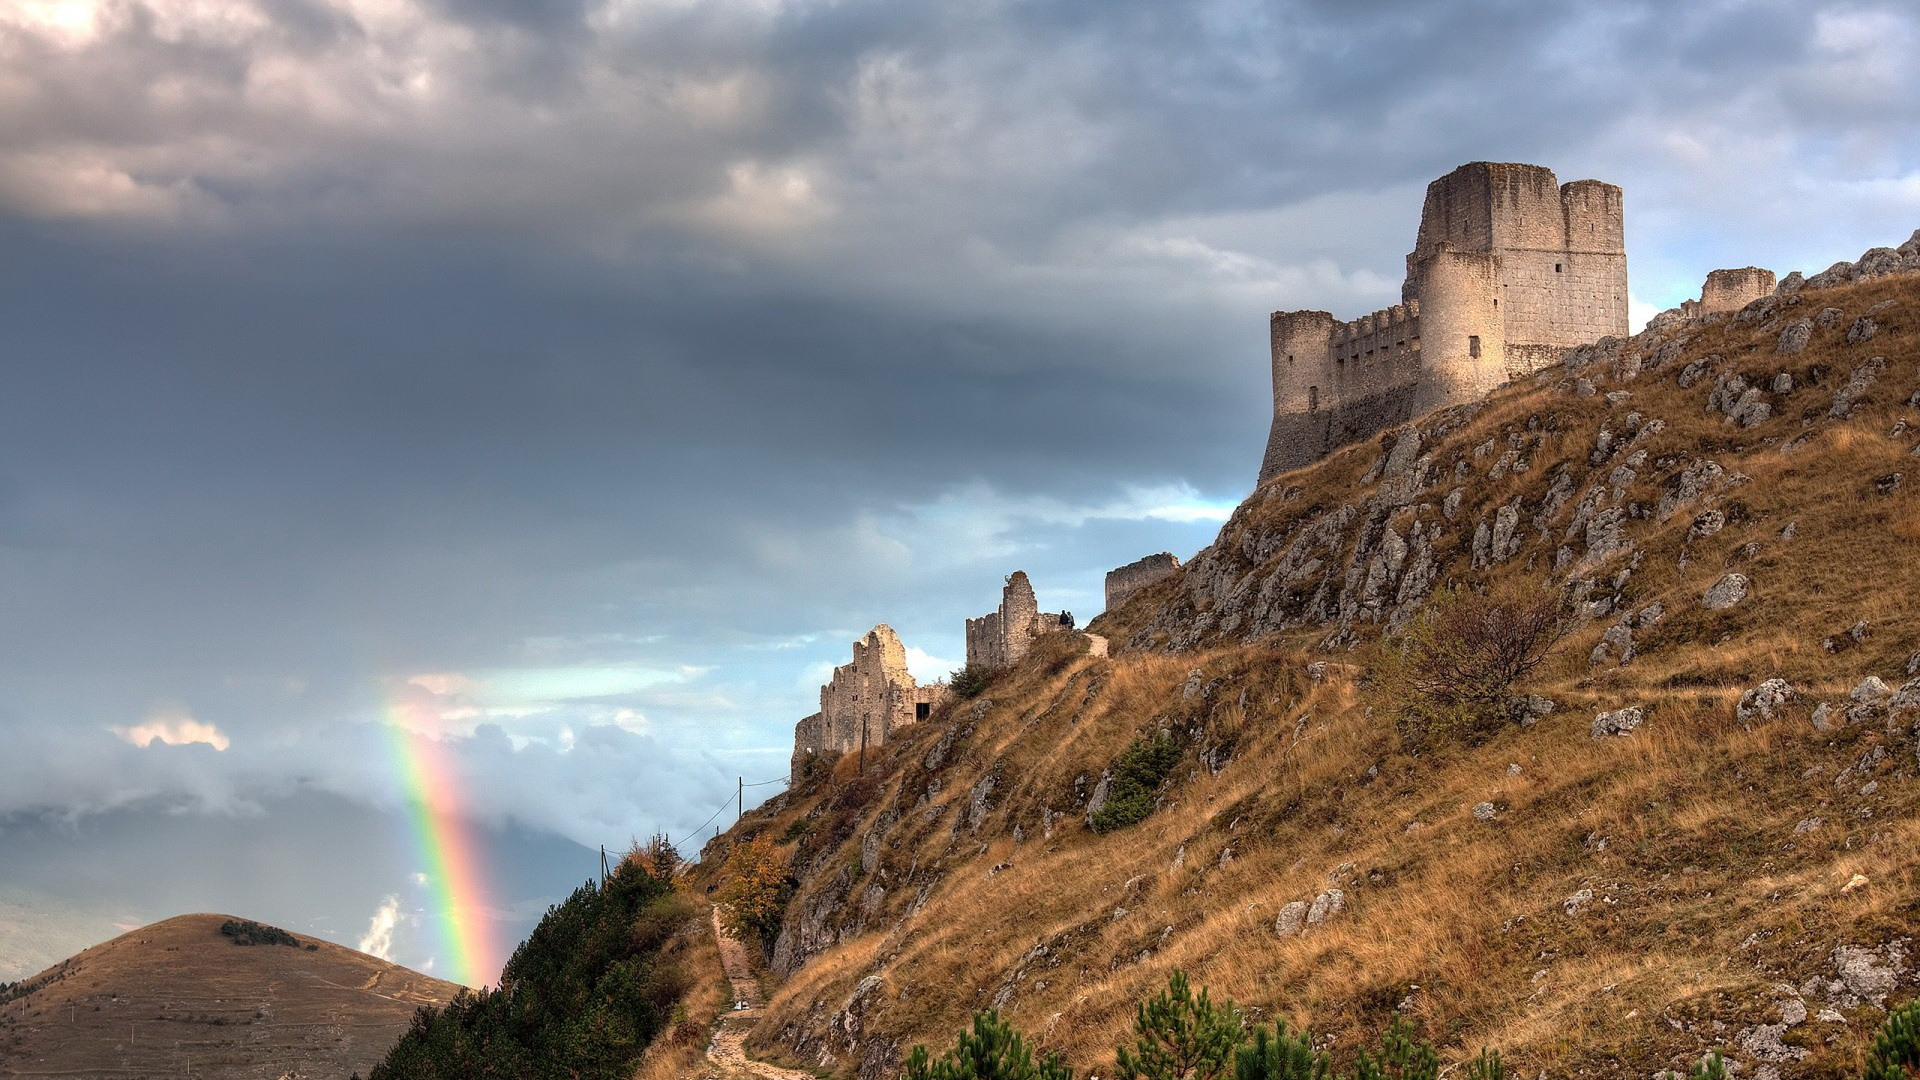 click to free download the wallpaper--Beautiful Sceneries of the World - The Great Wall on the Hillside, a Rainbow Showing Up, the Sky is Still Cloudy 1920X1080 free wallpaper download